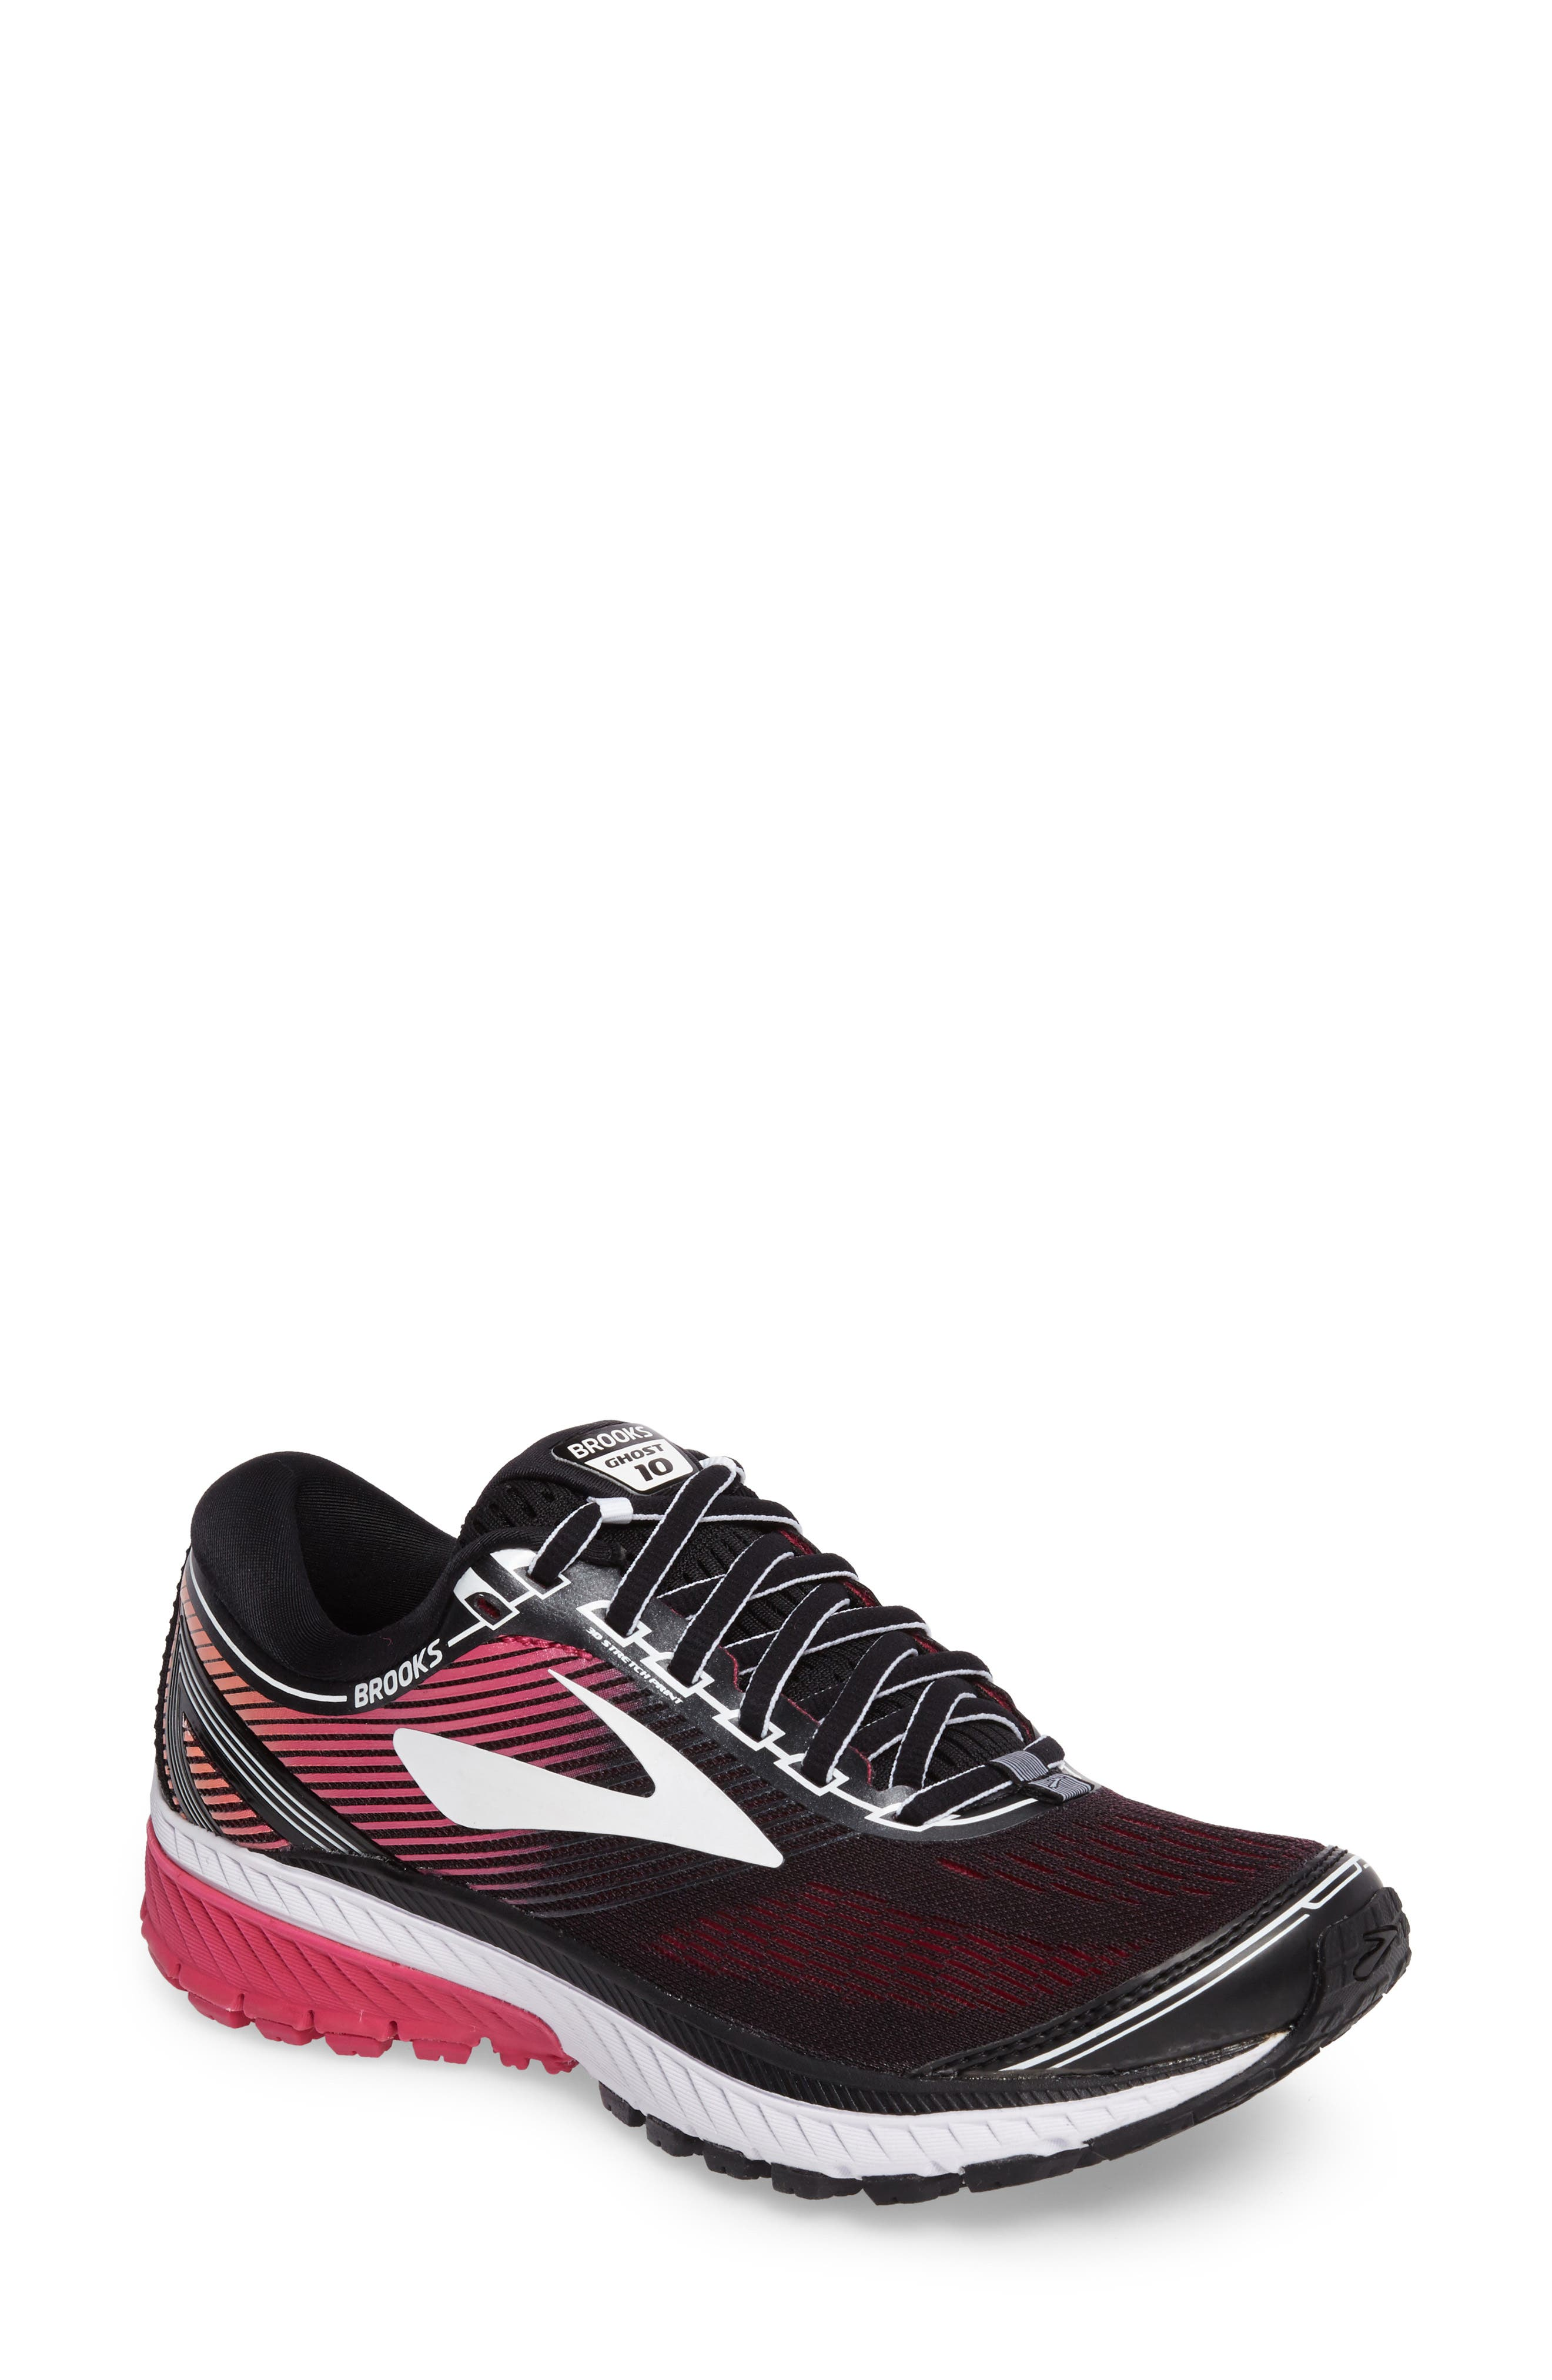 Ghost 10 Running Shoe,                             Main thumbnail 5, color,